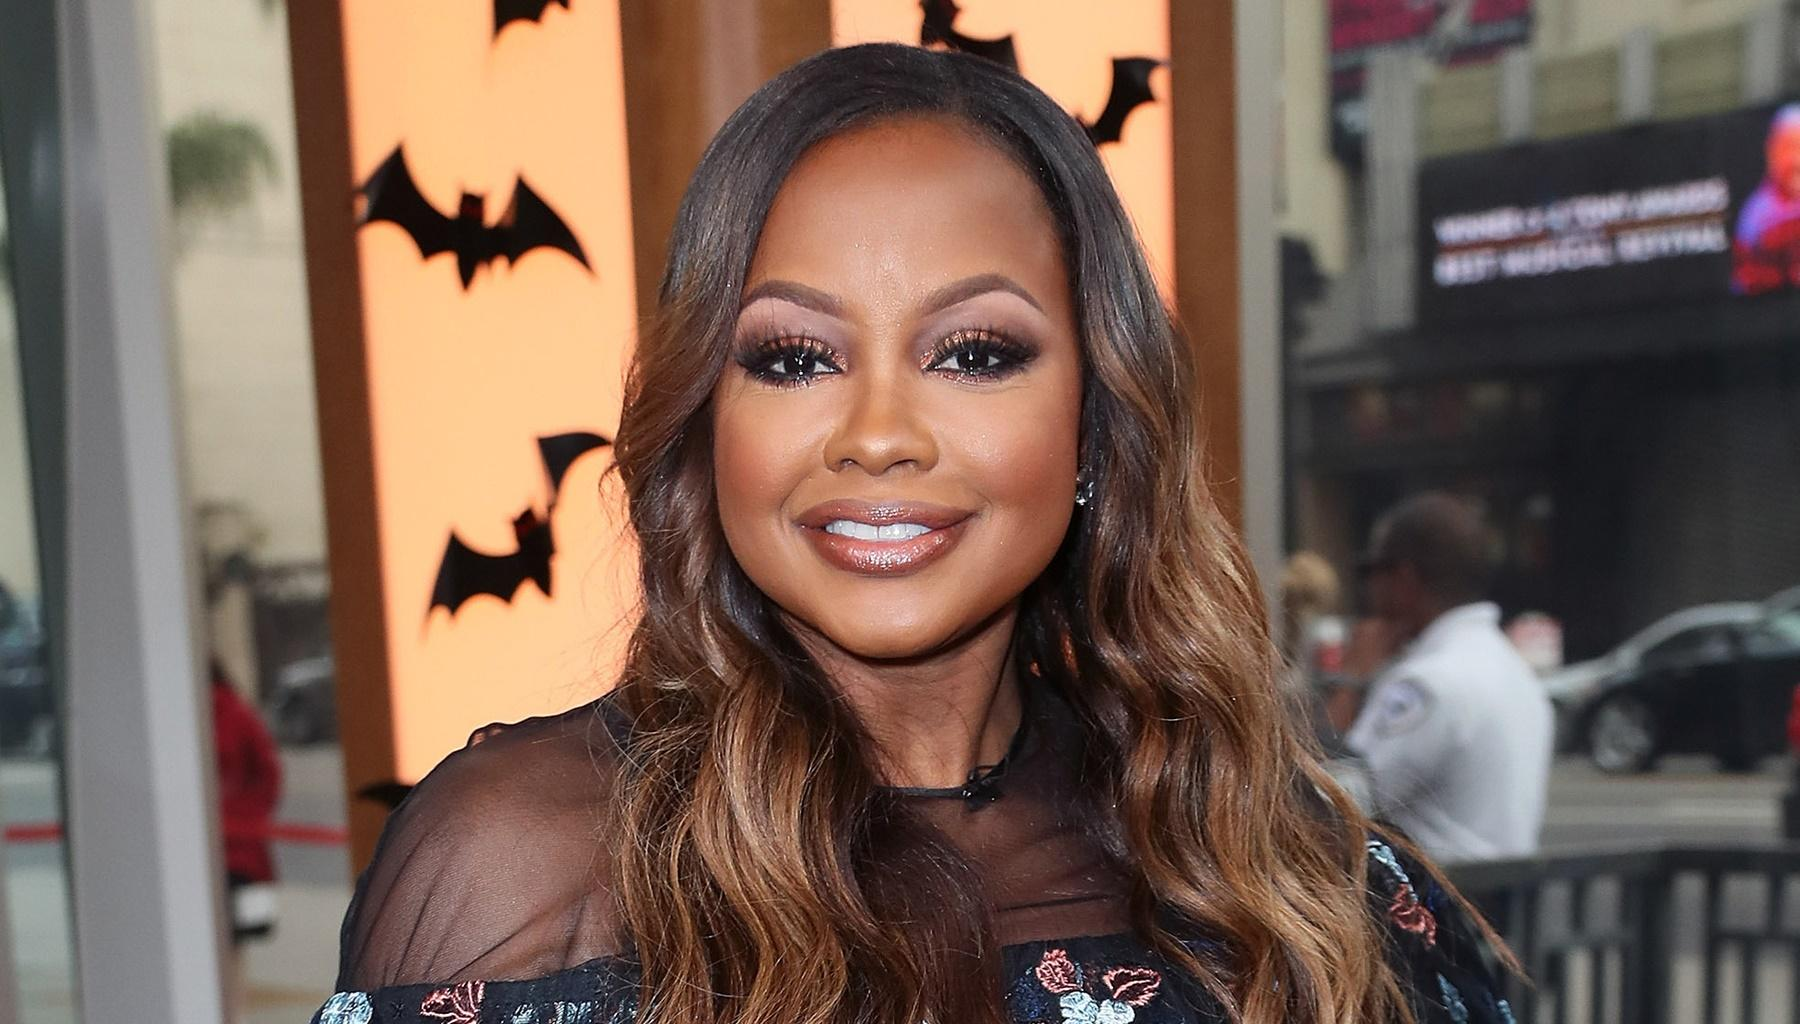 Phaedra Parks Gives Them Something To Talk About In Stunning Valentine's Day Dress Photo -- Will Tone Kapone Resist?